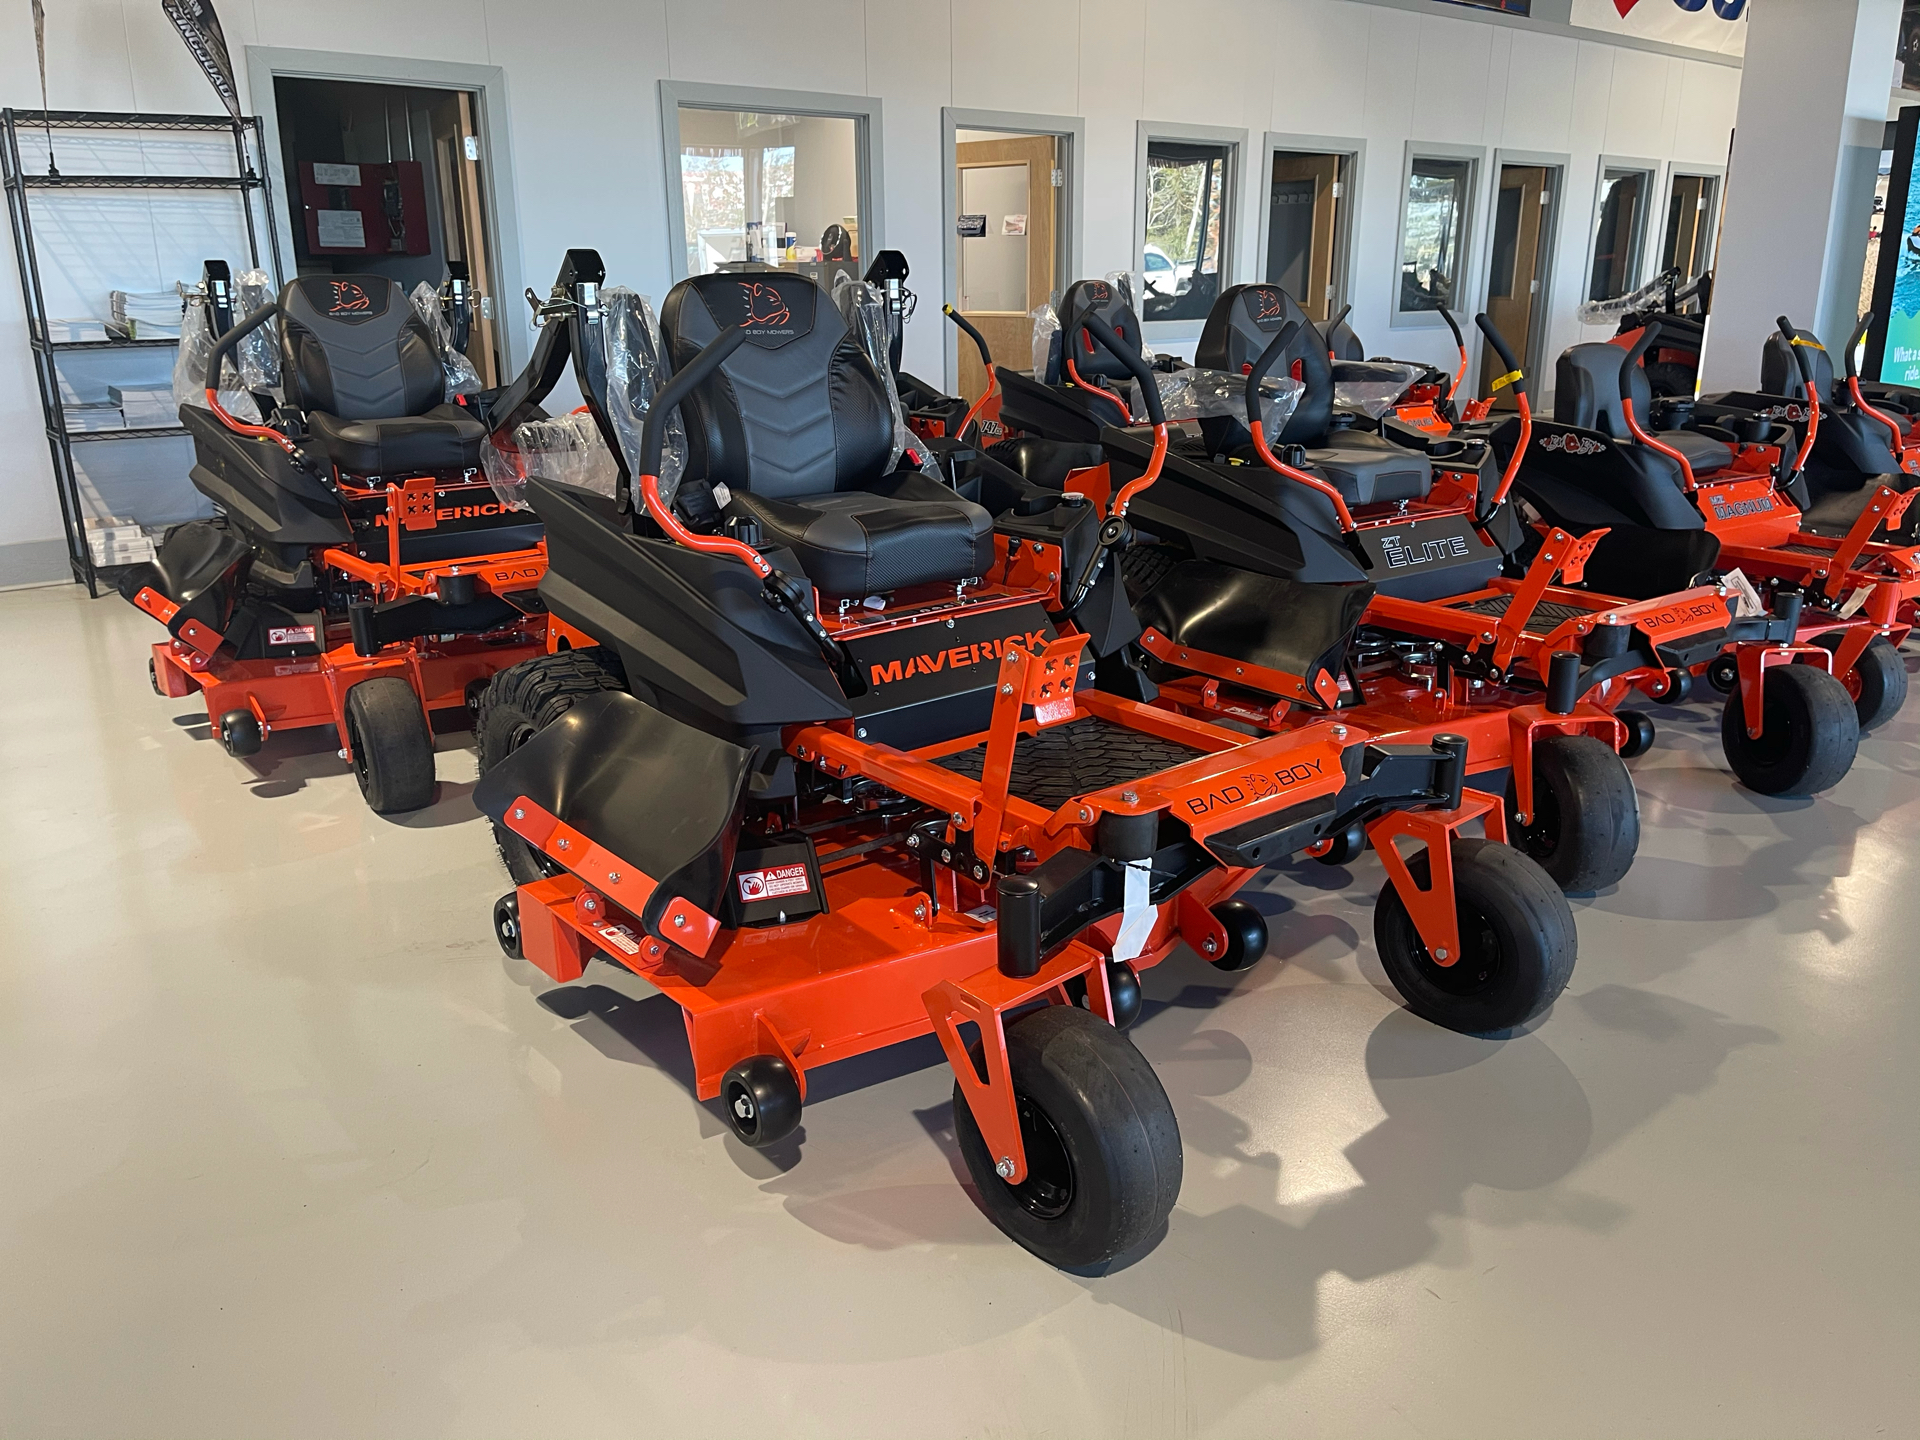 2021 Bad Boy Mowers Maverick 60 in. Kohler Confidant 747 cc in Valdosta, Georgia - Photo 2